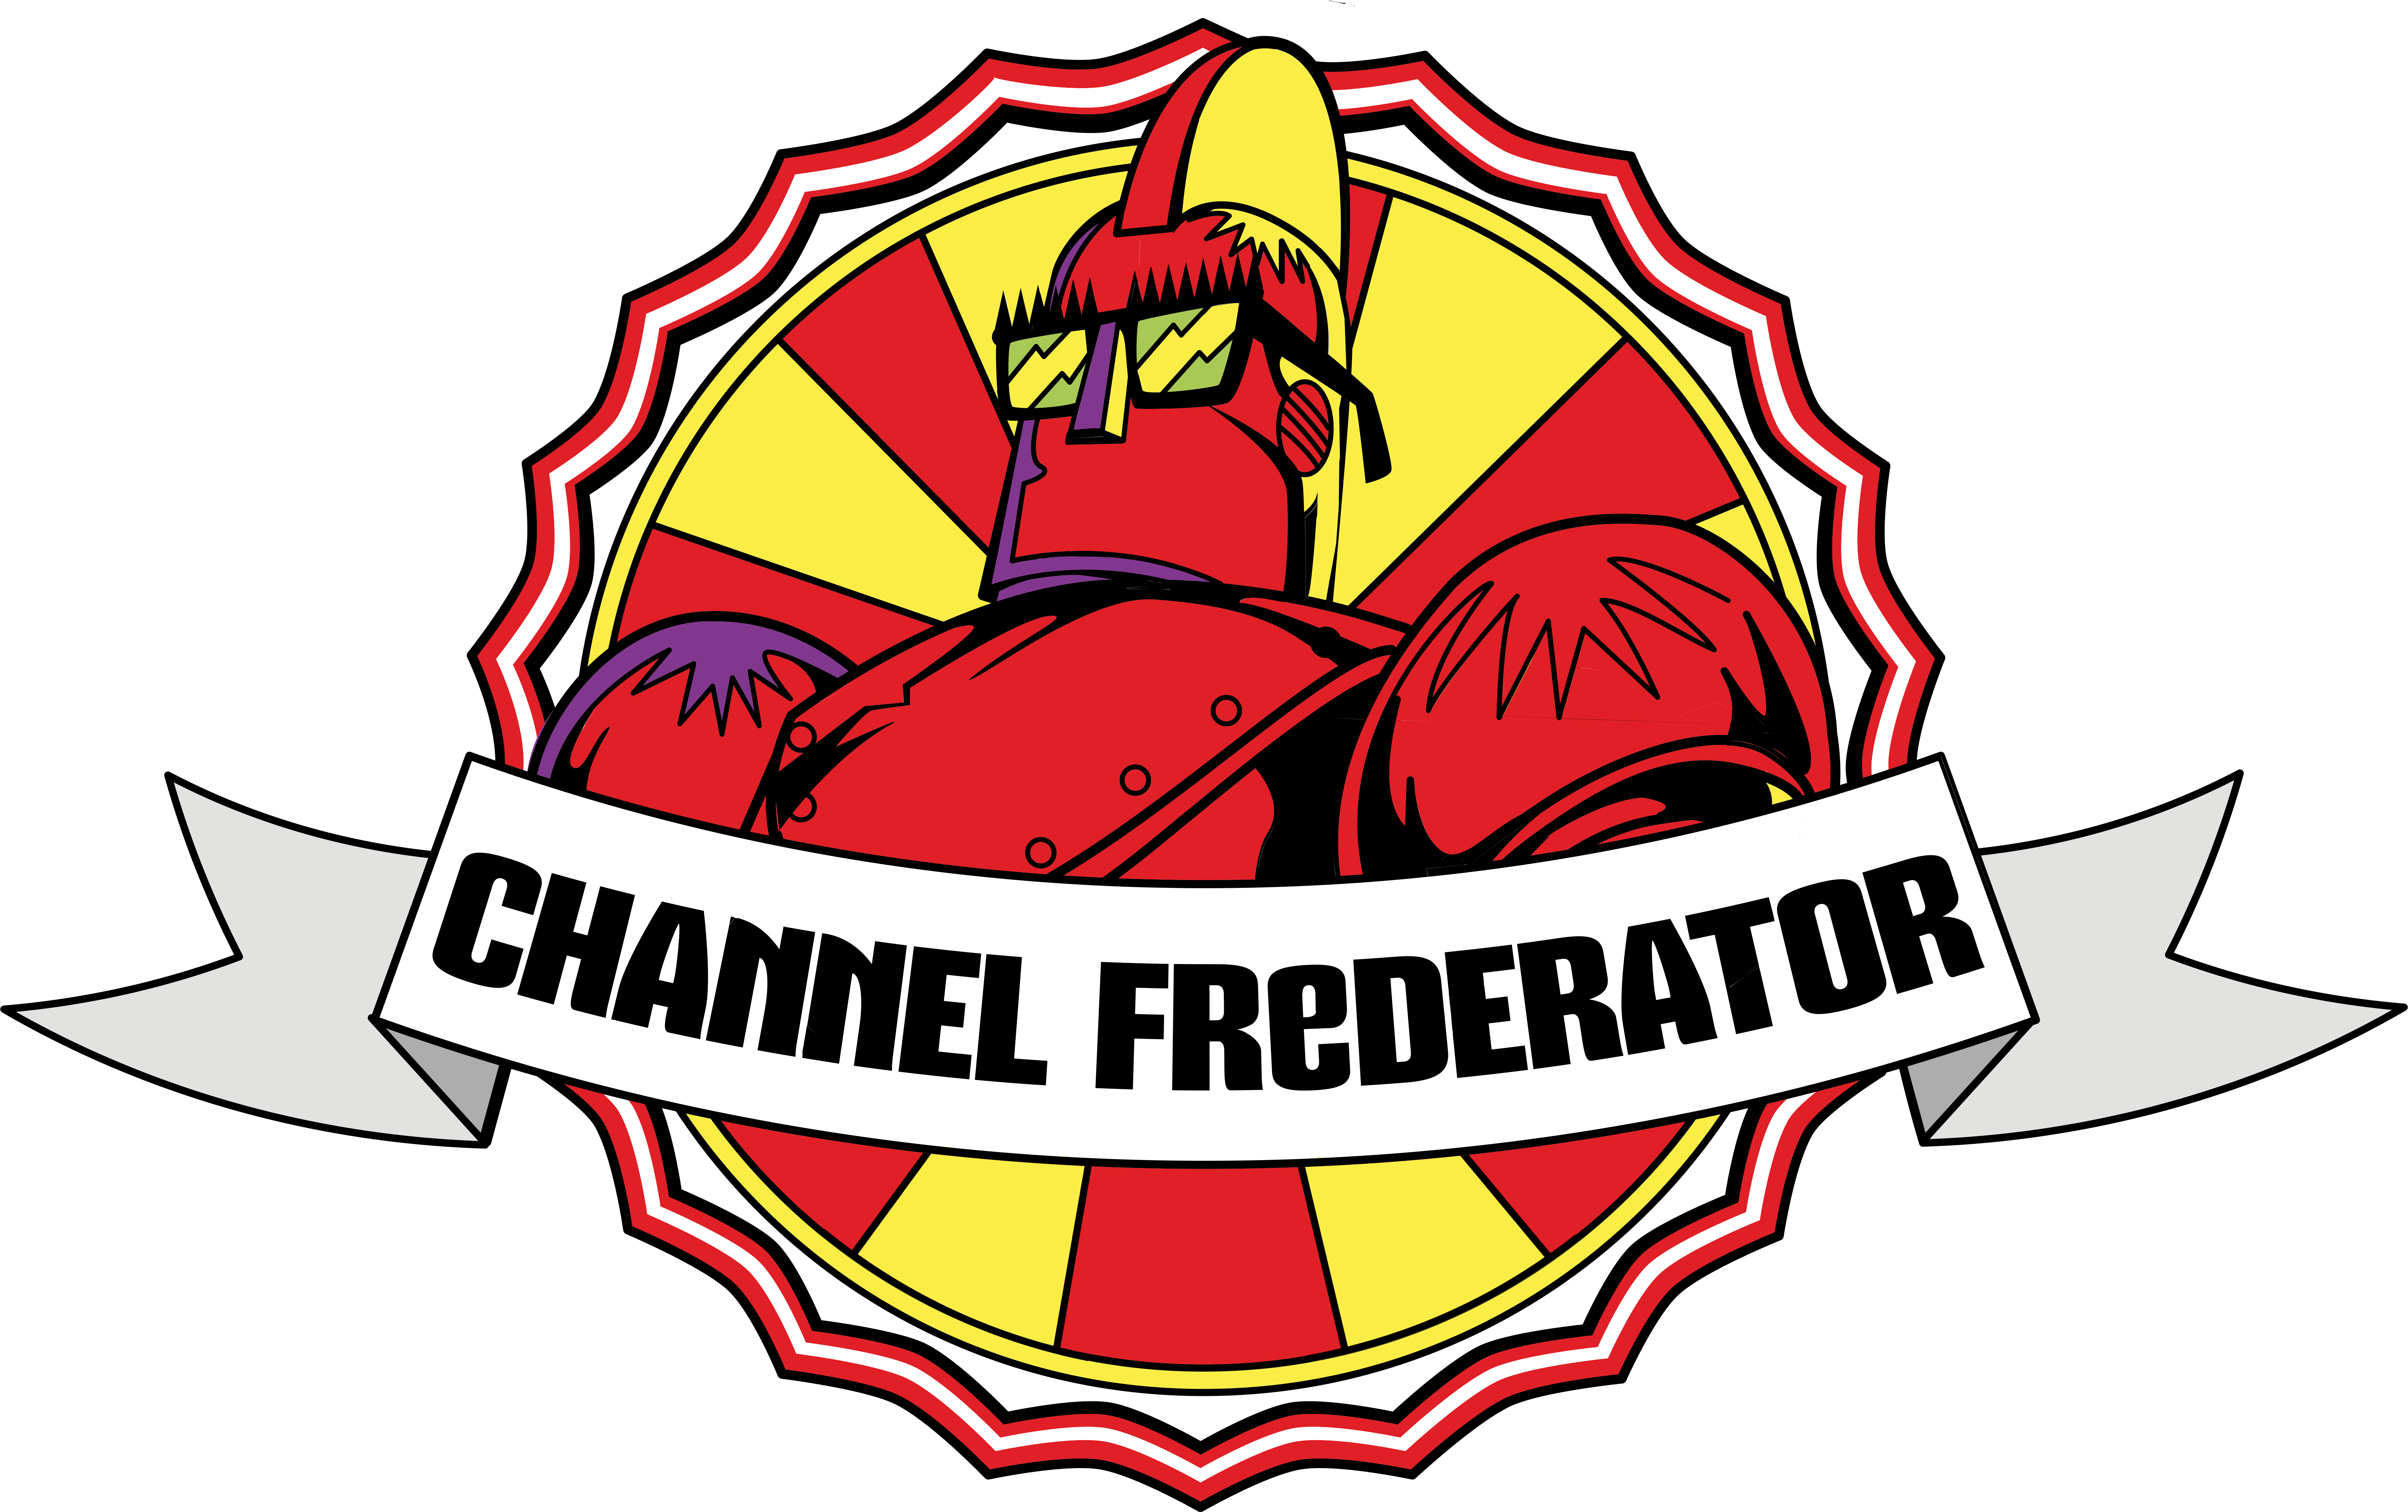 Channel Frederator LOGO